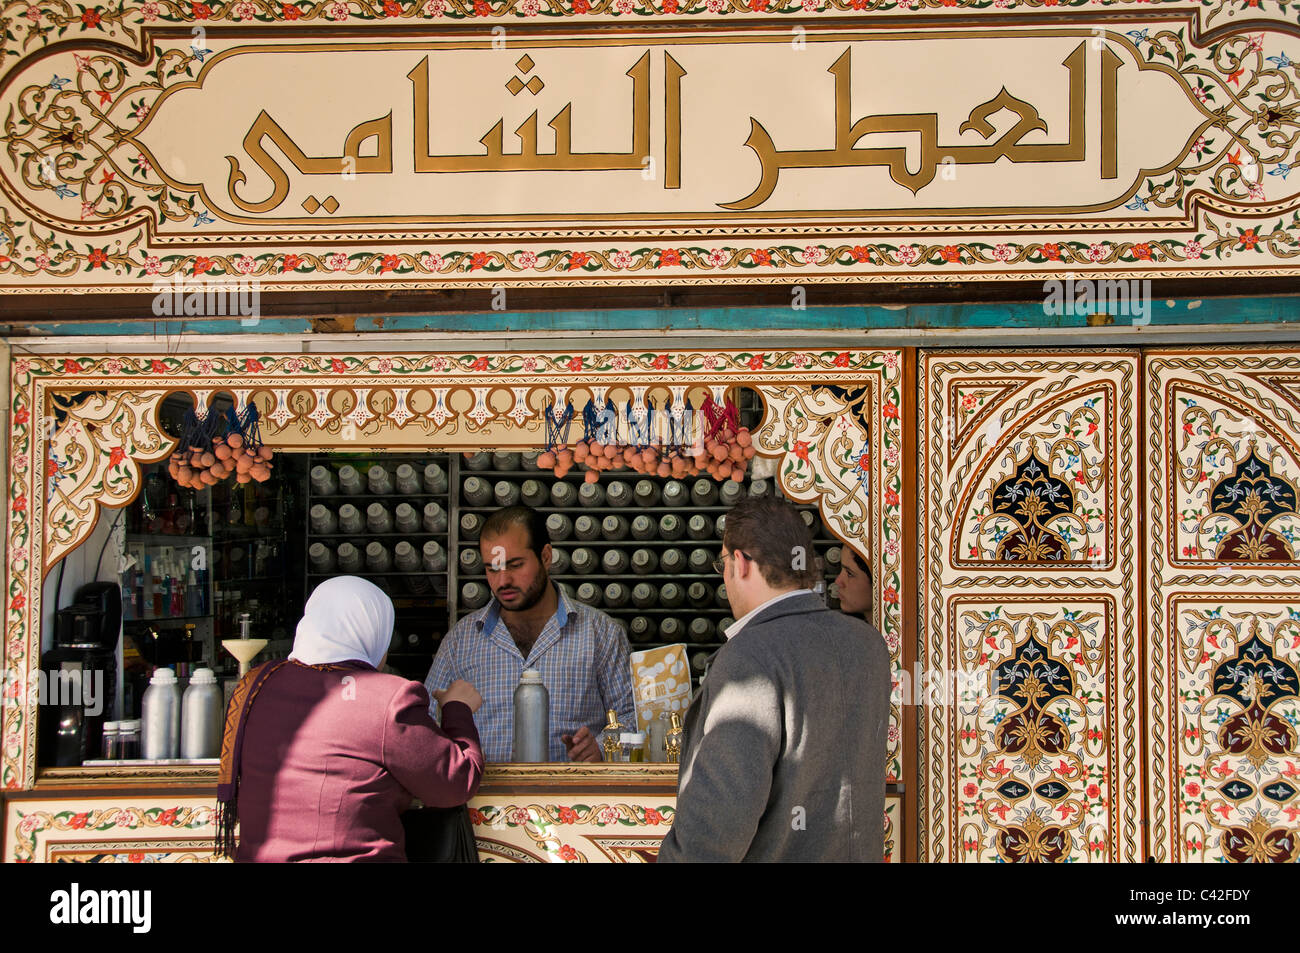 Modern Town City Damascus Syria  Bazaar Perfume Perfumery Bottle smell odour fragrance flavour aroma bottle - Stock Image